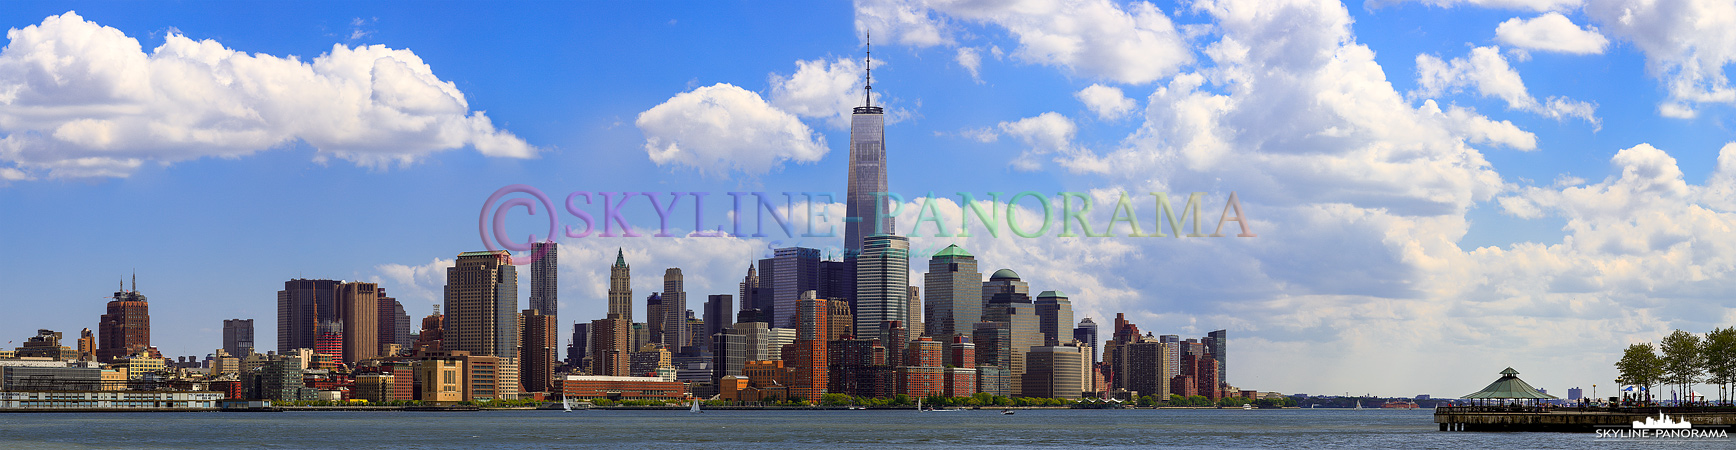 Skyline New York - One World Trade Center